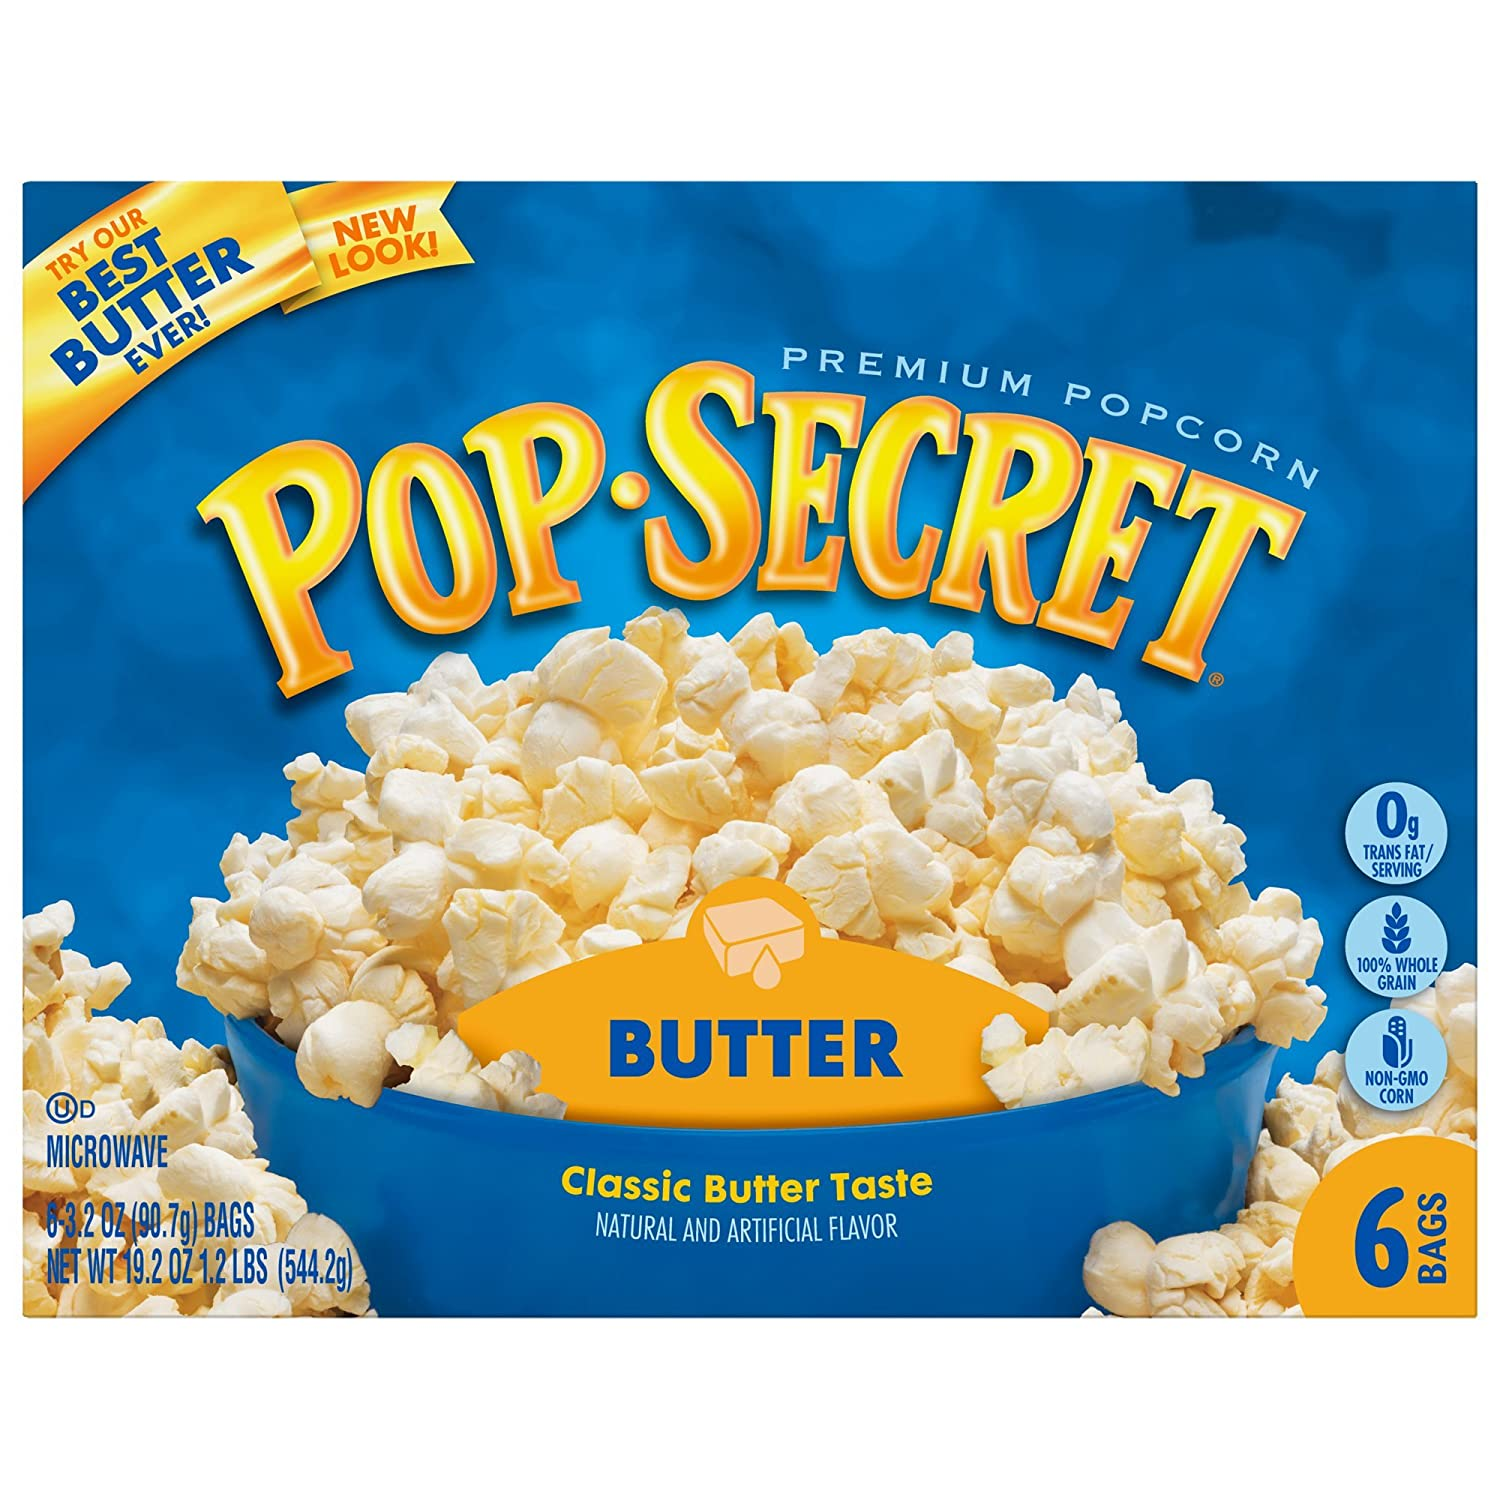 Pop Secret Butter Popcorn, 3.2 Ounce, 6 Count